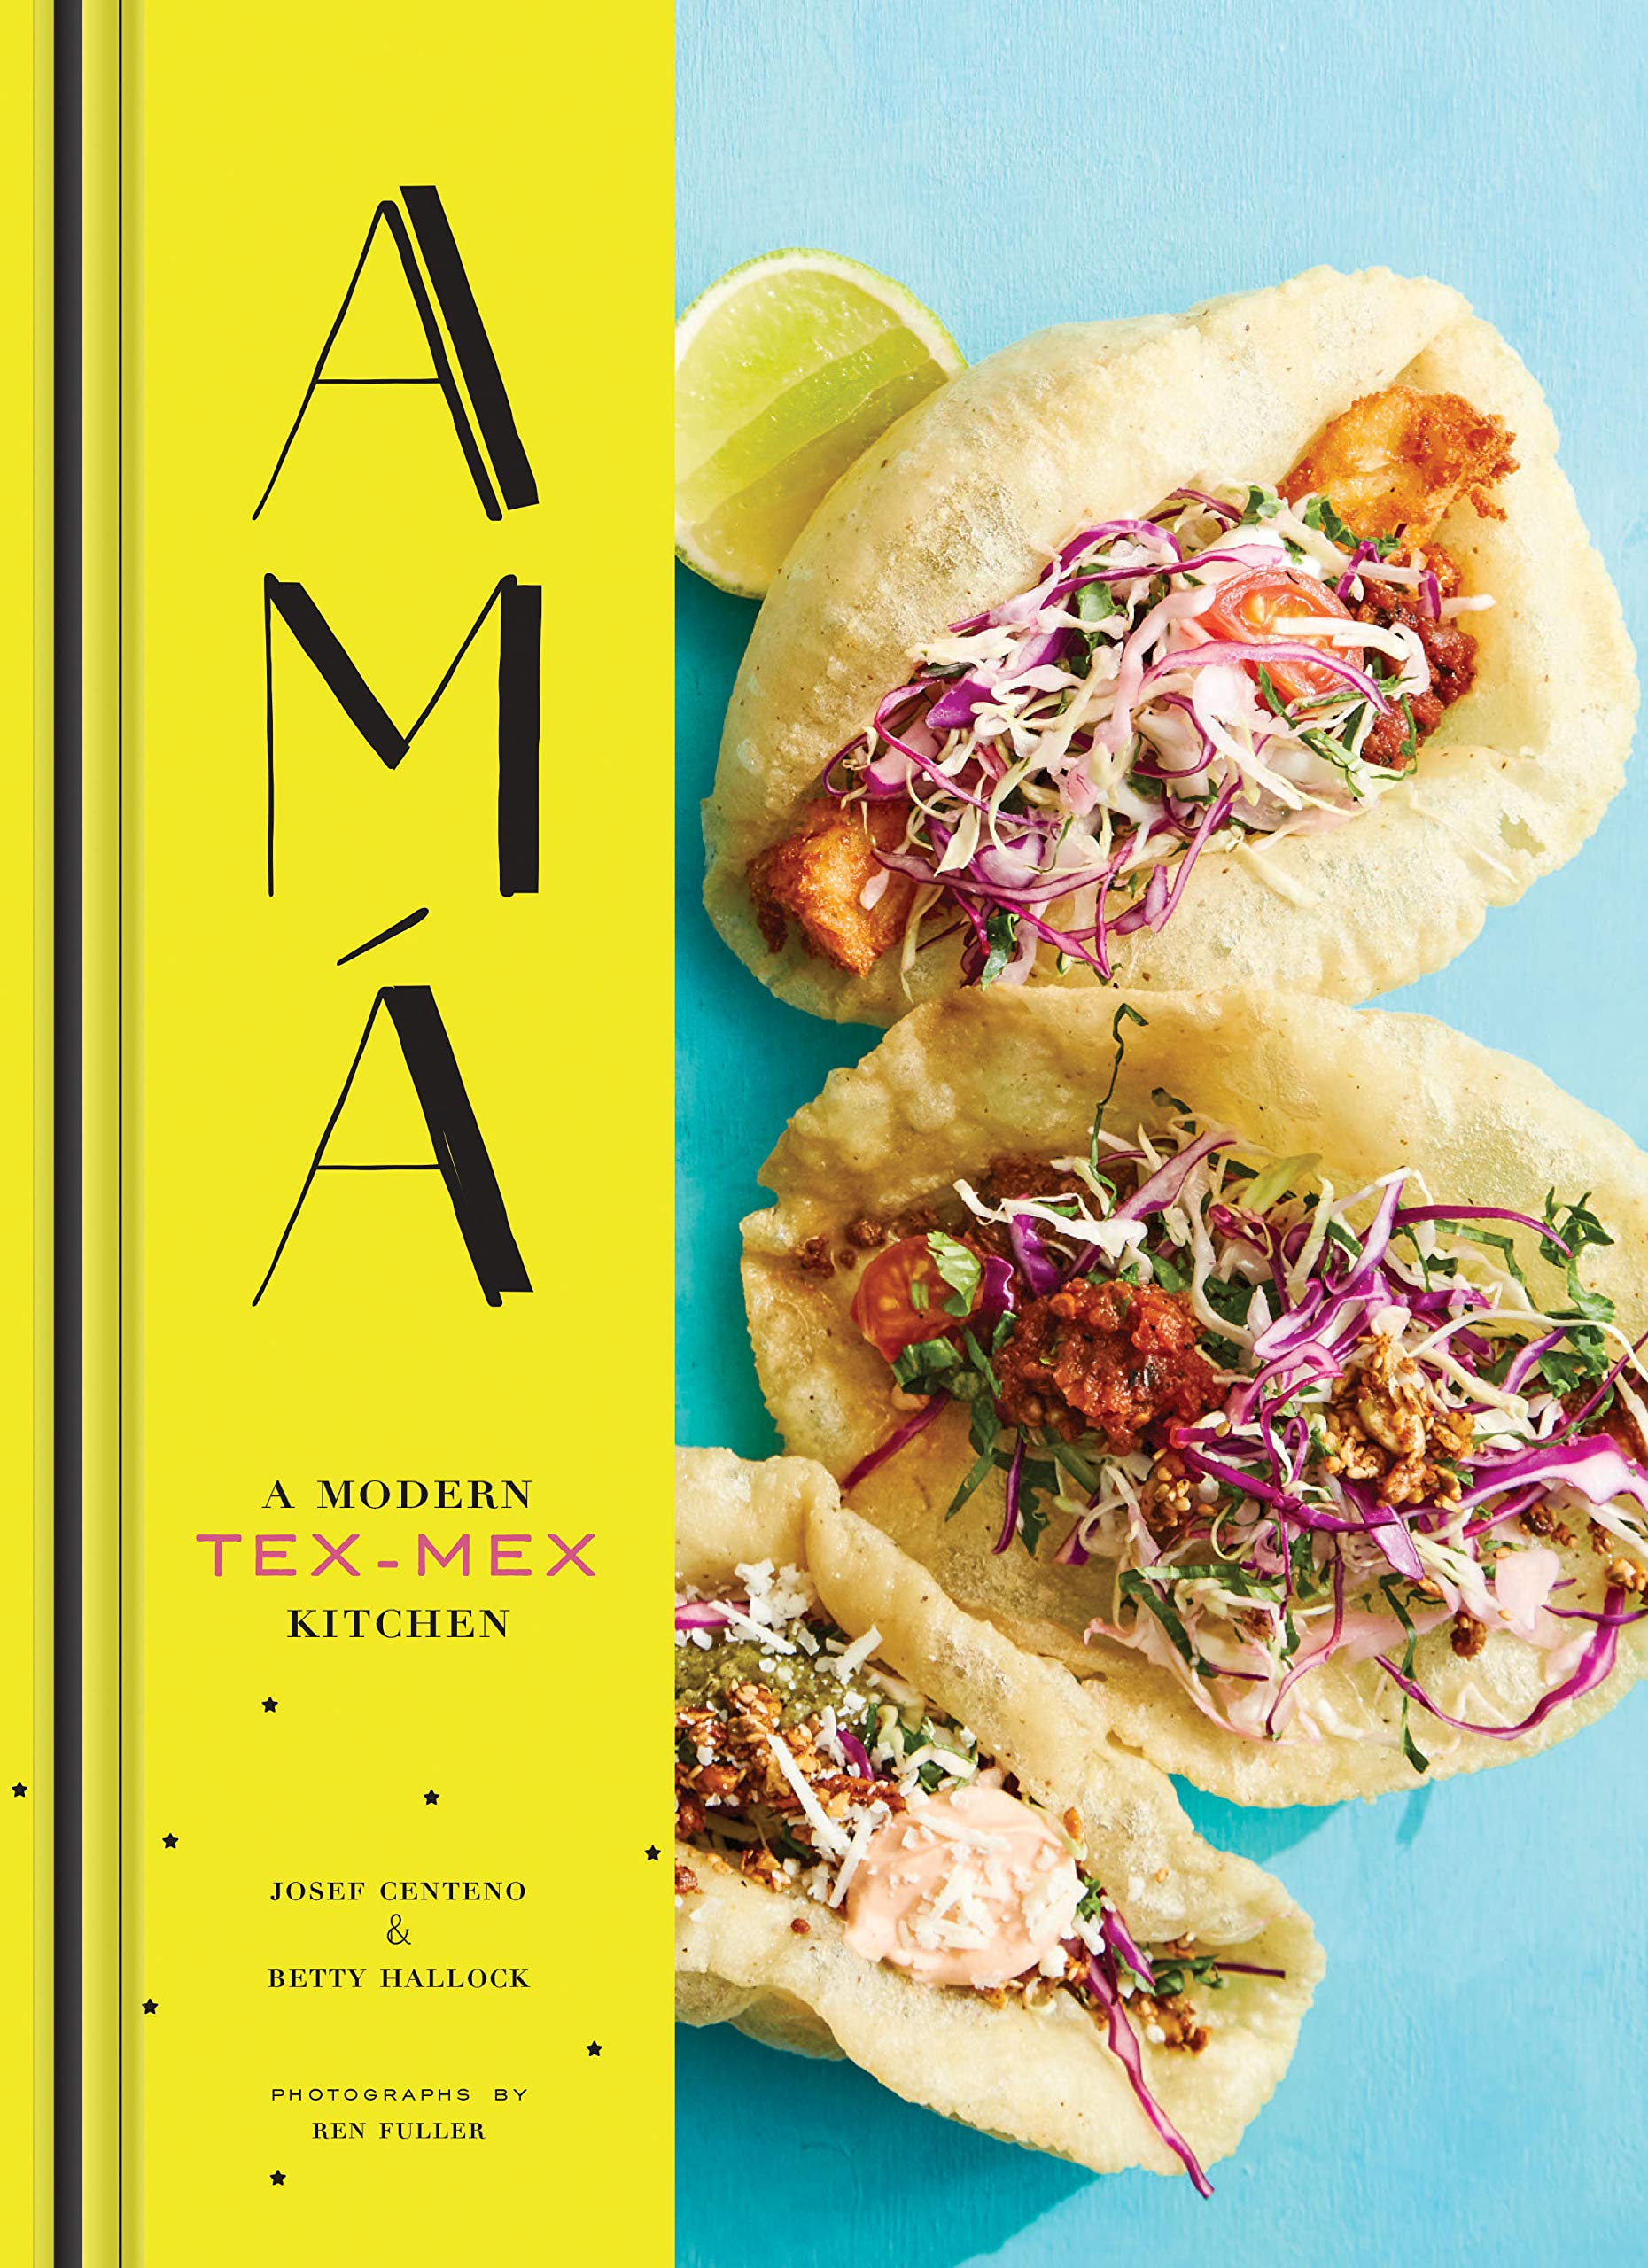 Ama. A Modern Tex-Mex Kitchen: A Modern Tex-Mex Kitchen (Mexican Food Cookbooks, Tex-Mex Cooking, Mexican And Spanish Reci...